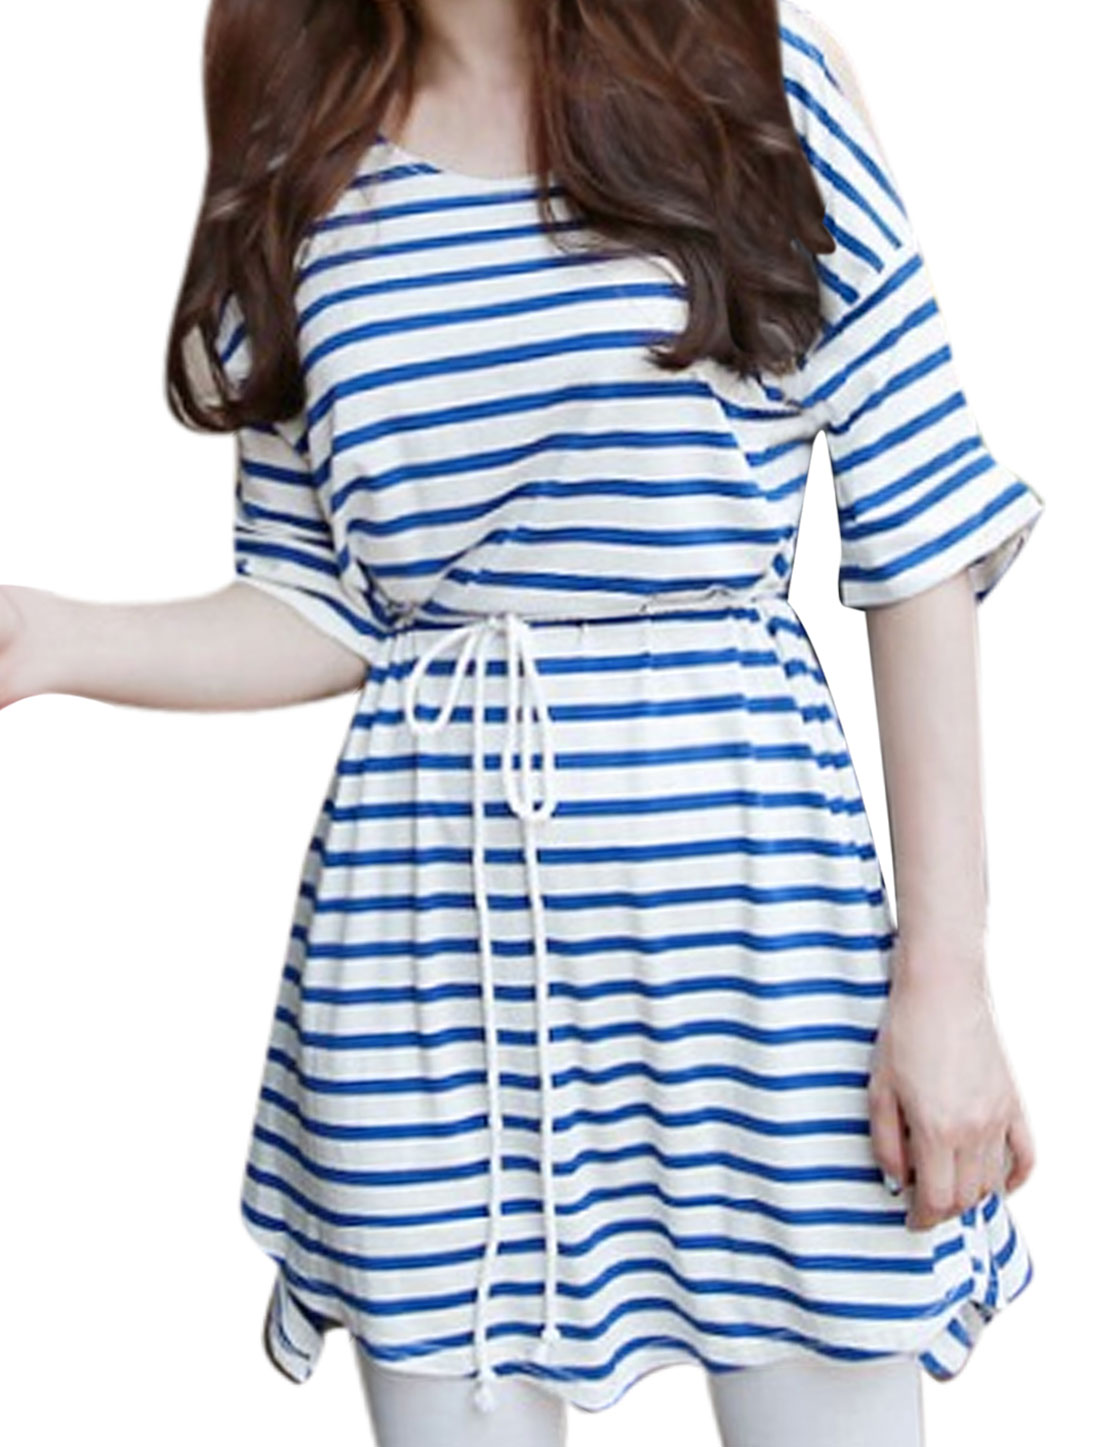 Women Cut Out Shoulder Stripes Tunic Top w Waist String White Blue S